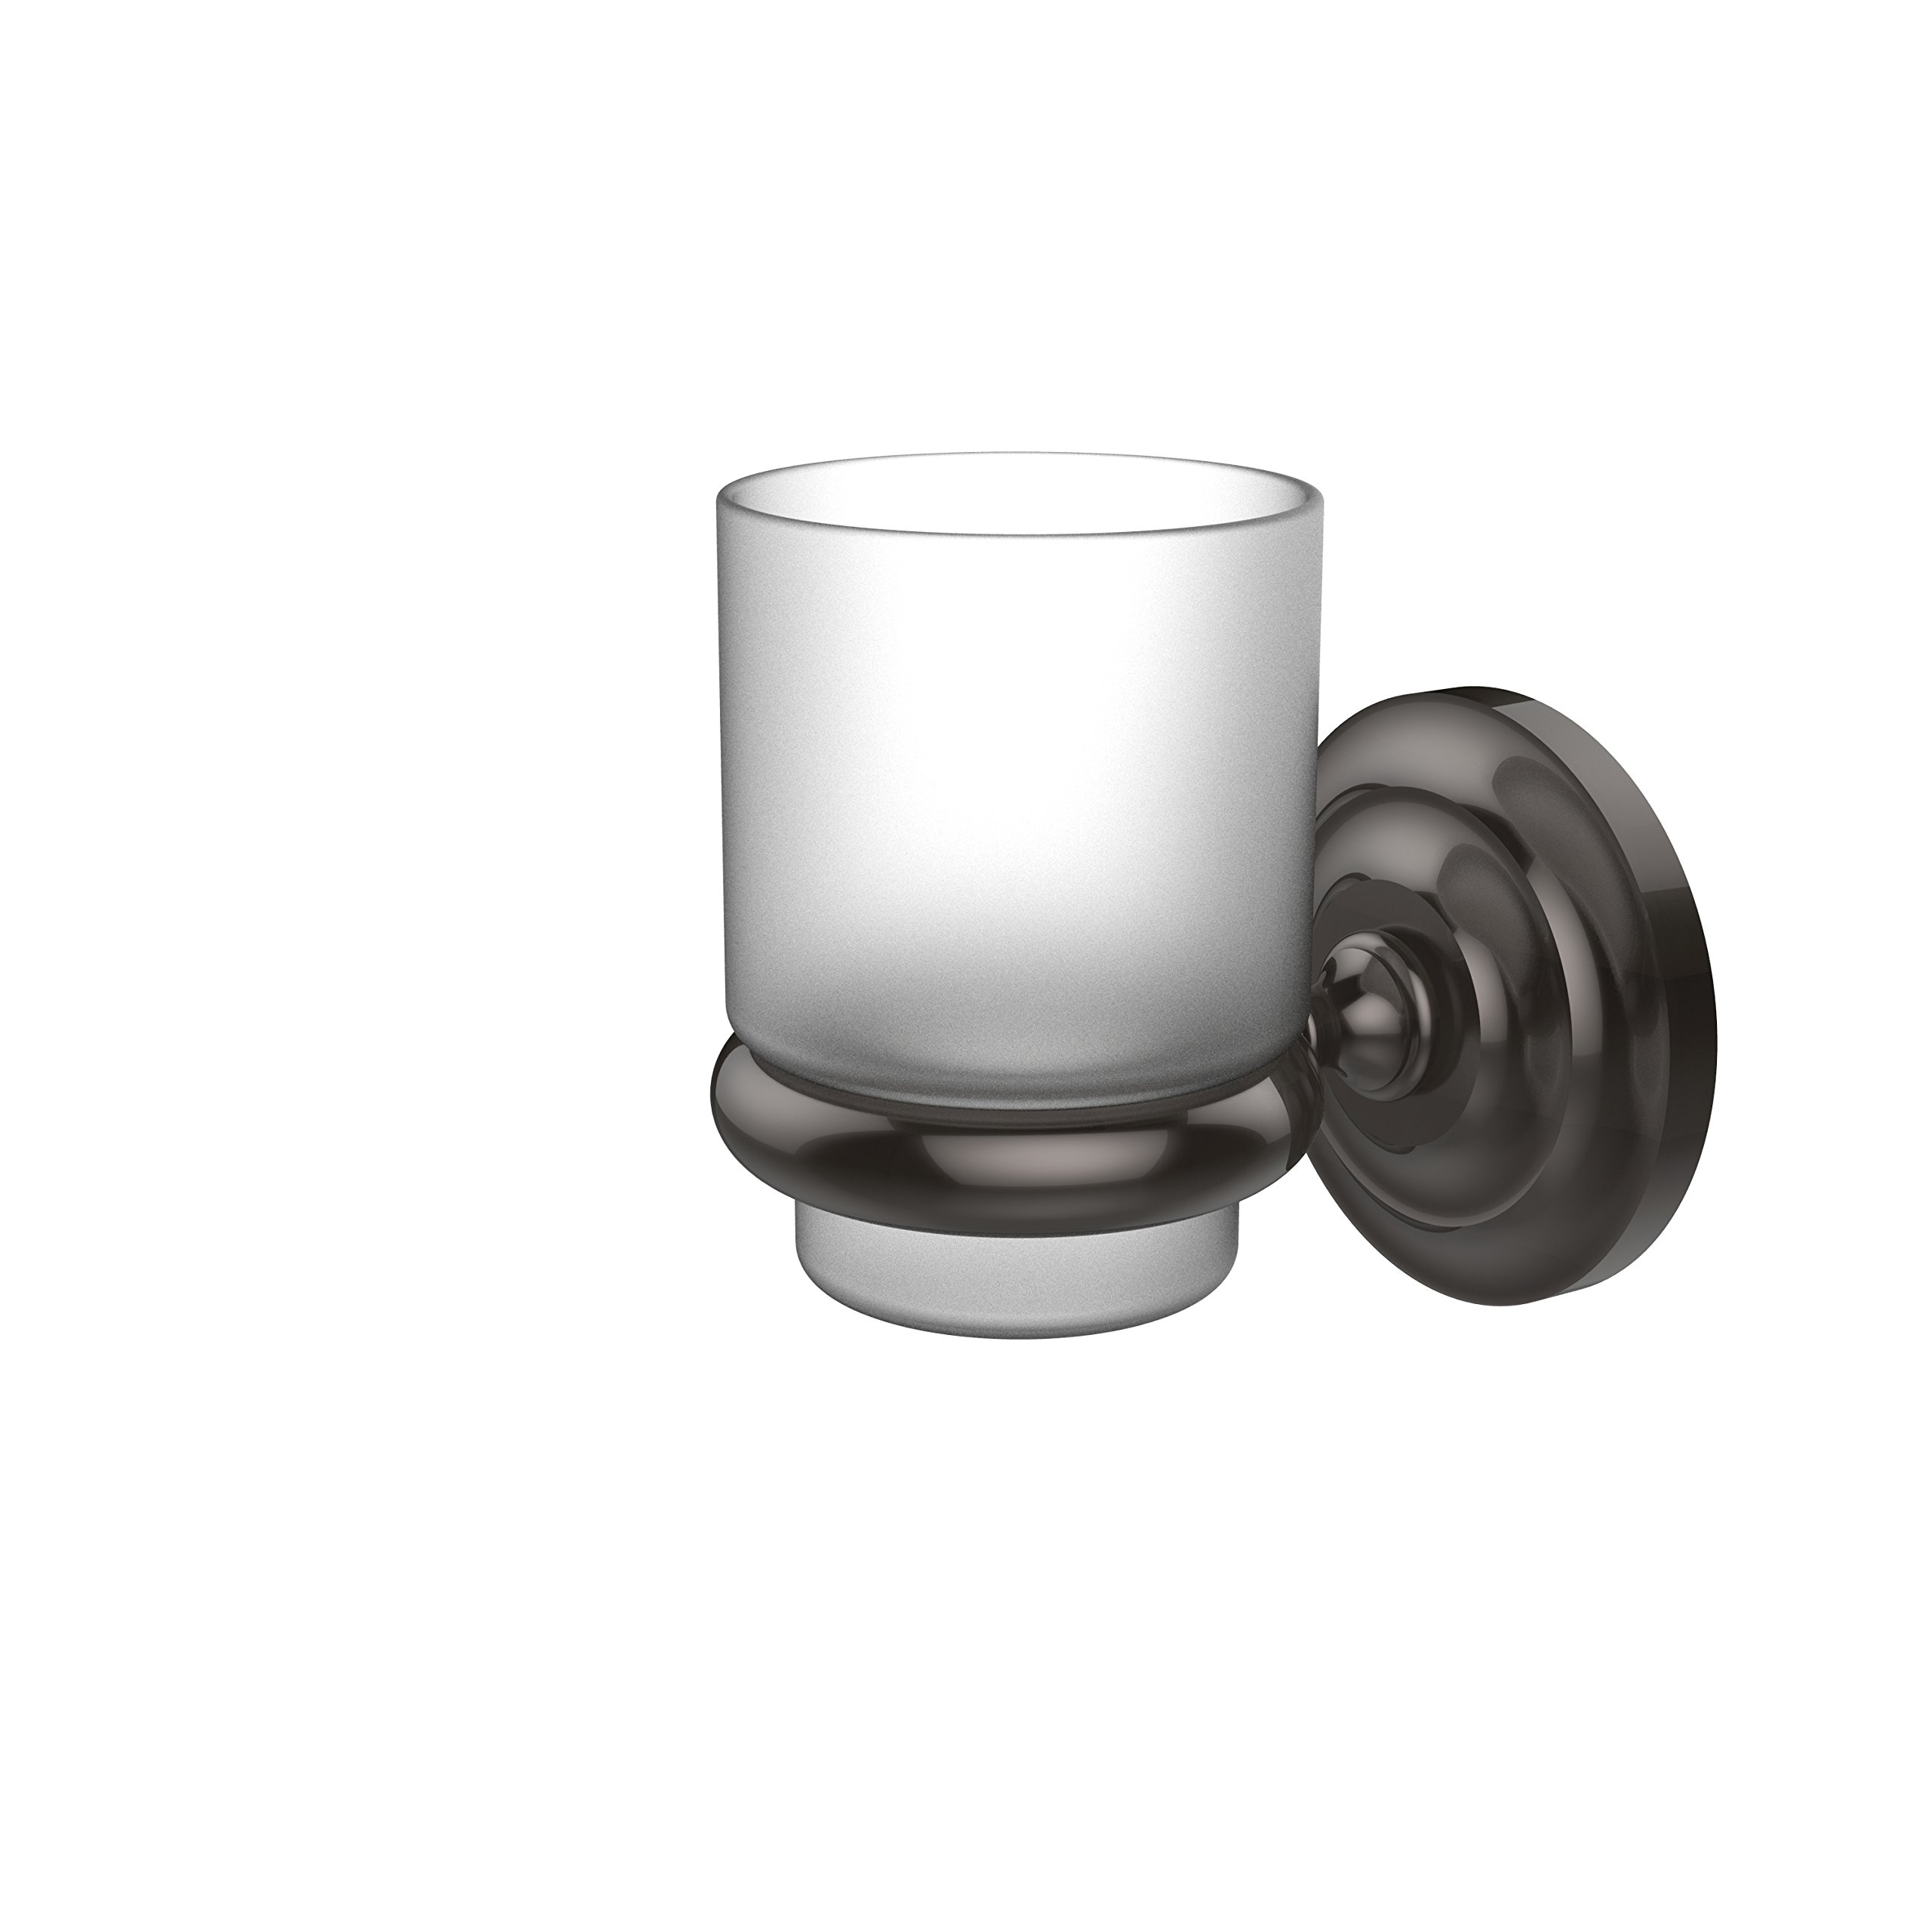 Allied Brass PQN-66-ORB Prestige Que Wall Mounted Tumbler Holder, Oil Rubbed Bronze